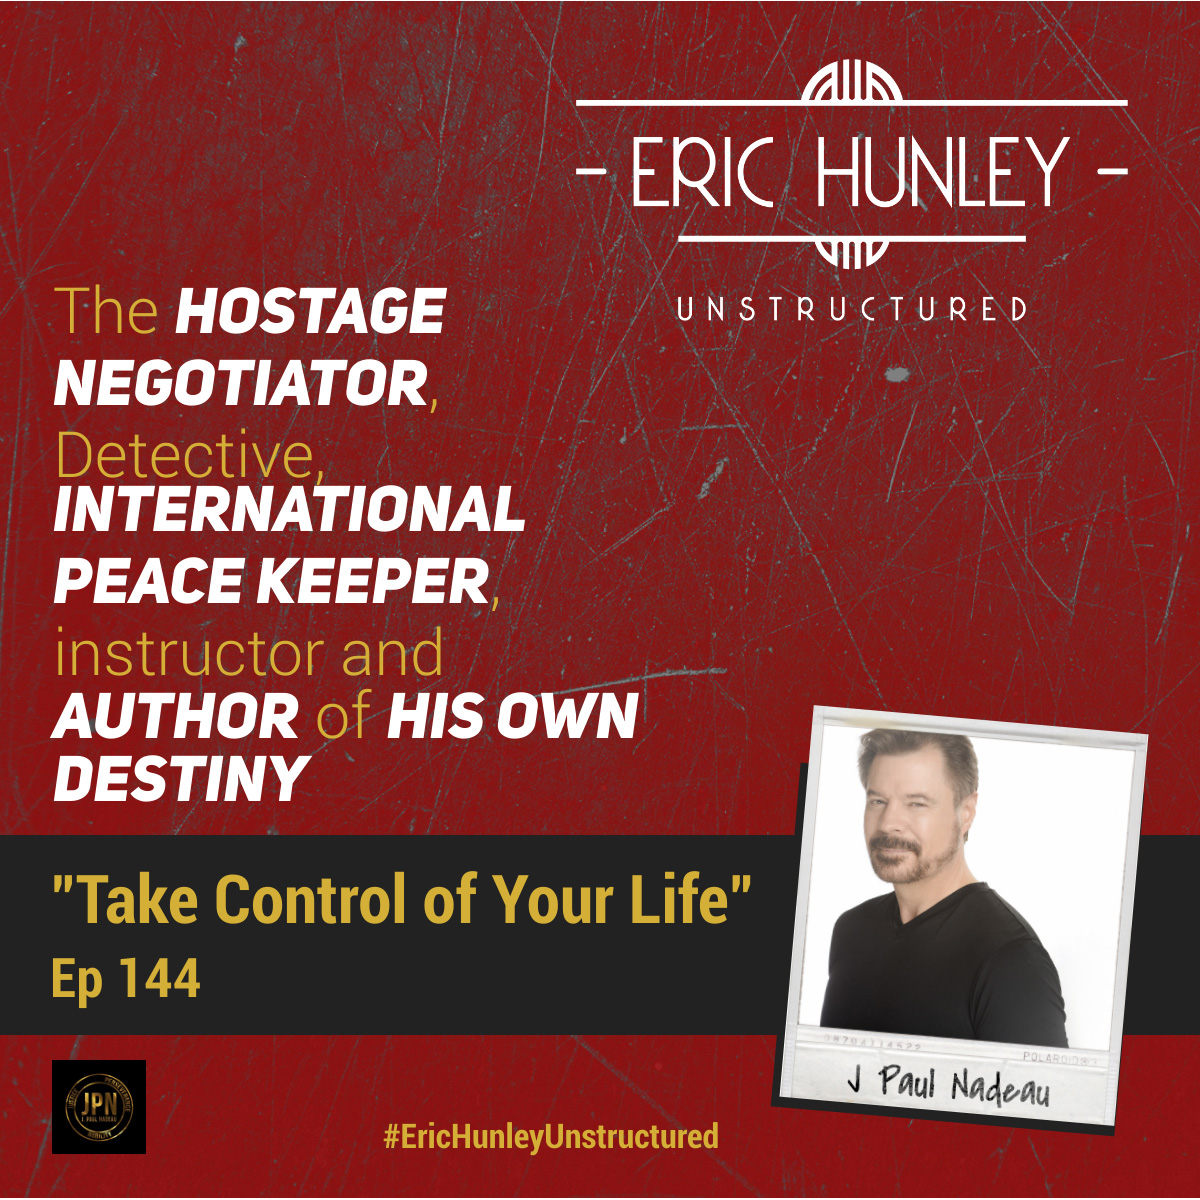 Eric Hunley Unstructured Podcast - 144 J Paul Nadeau Square Post